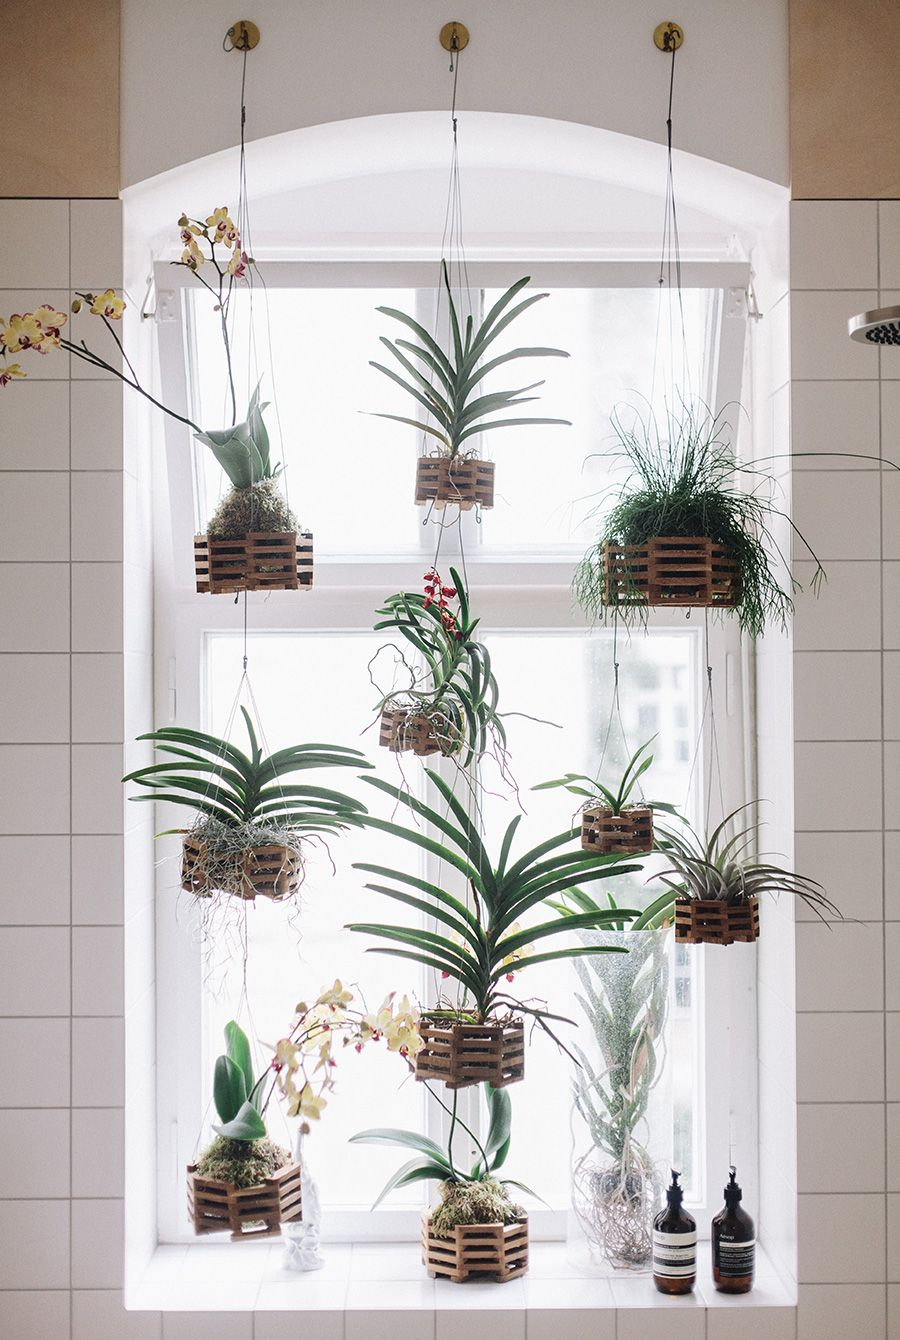 Fvf apartment dream home apartment plants window - How to hang plants in front of windows ...